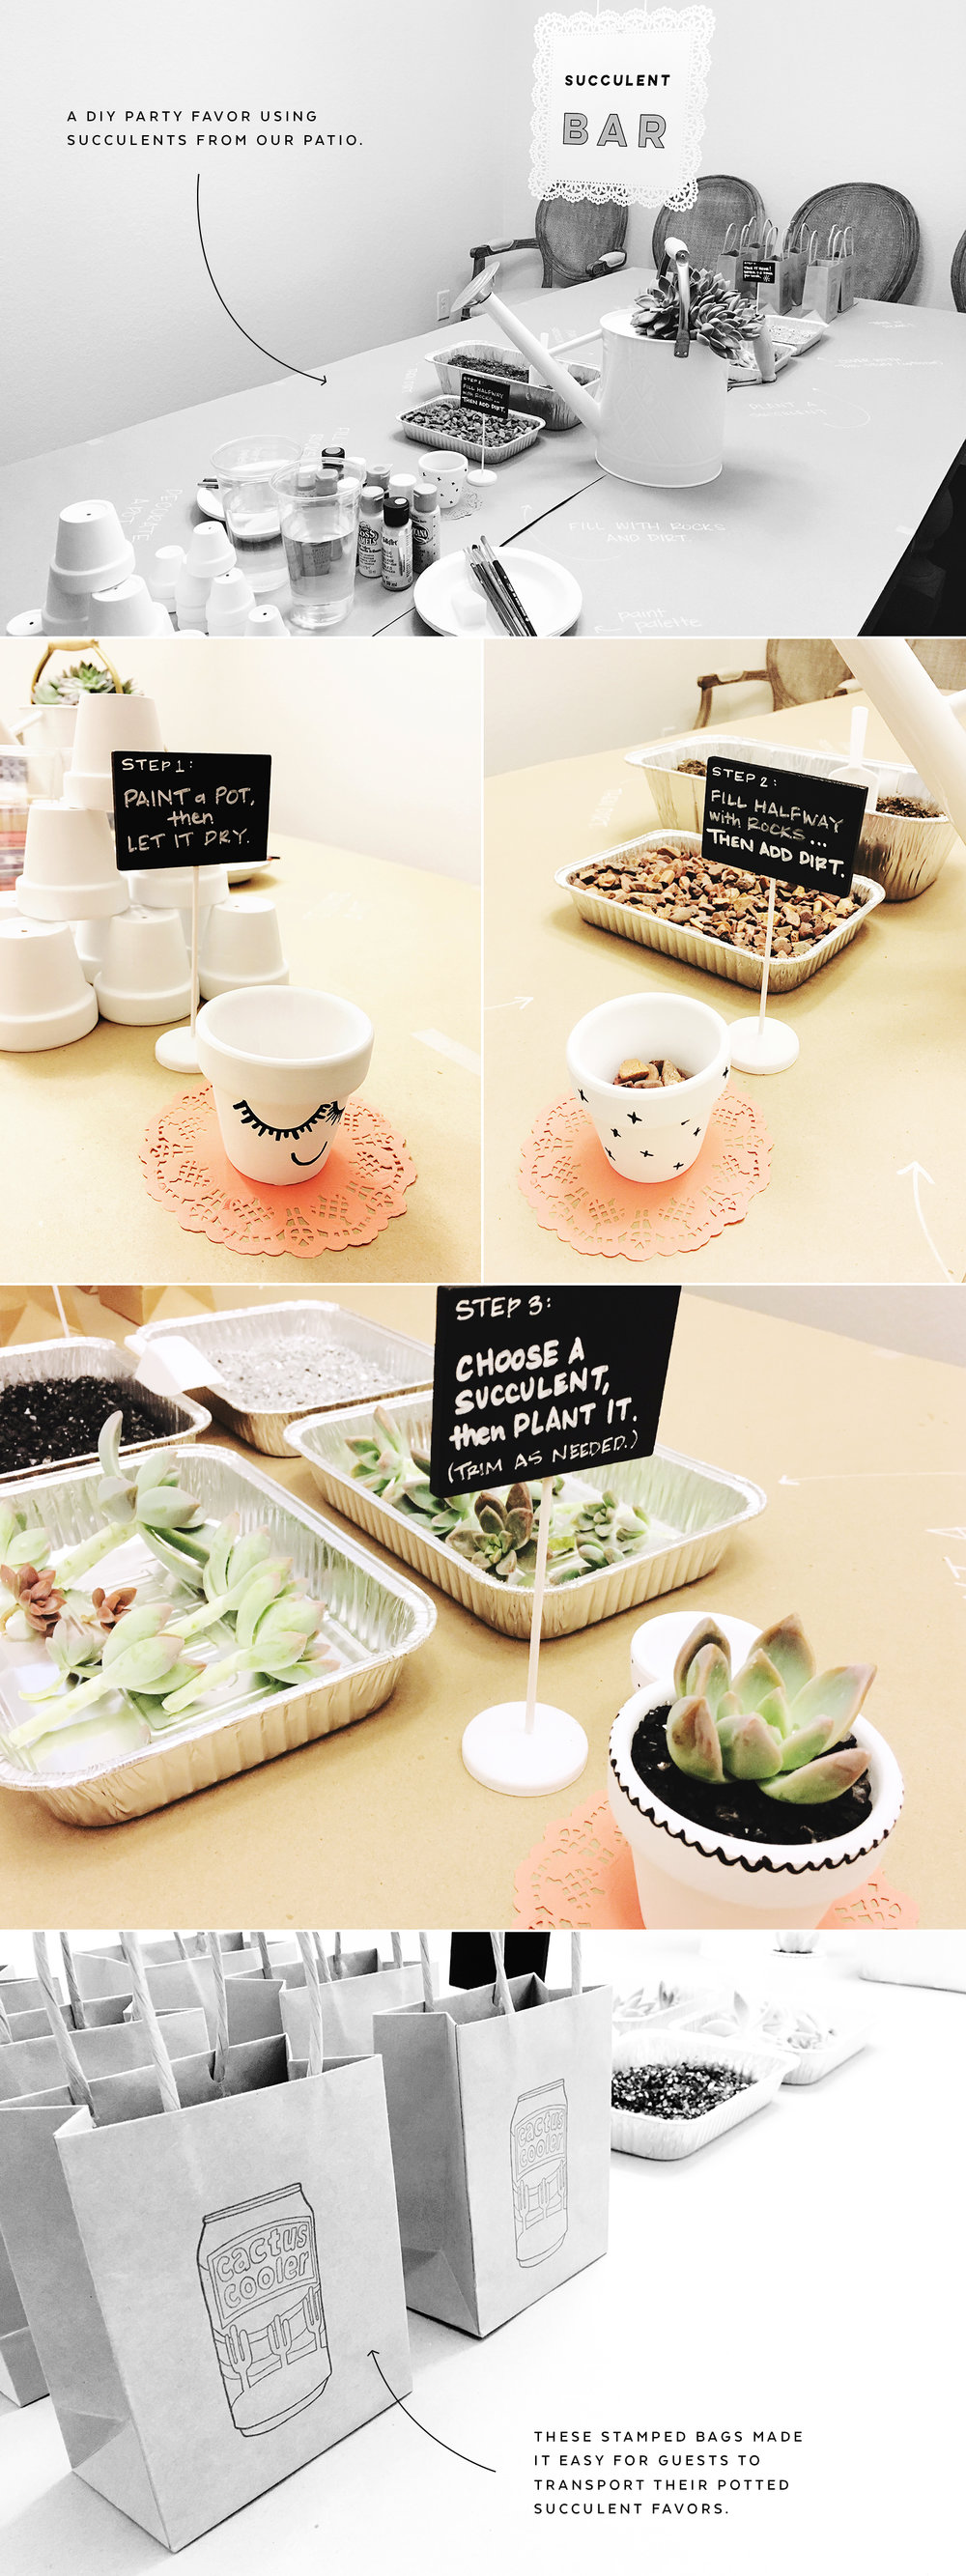 How to Set Up a Succulent Bar | Pretty Peas Paperie